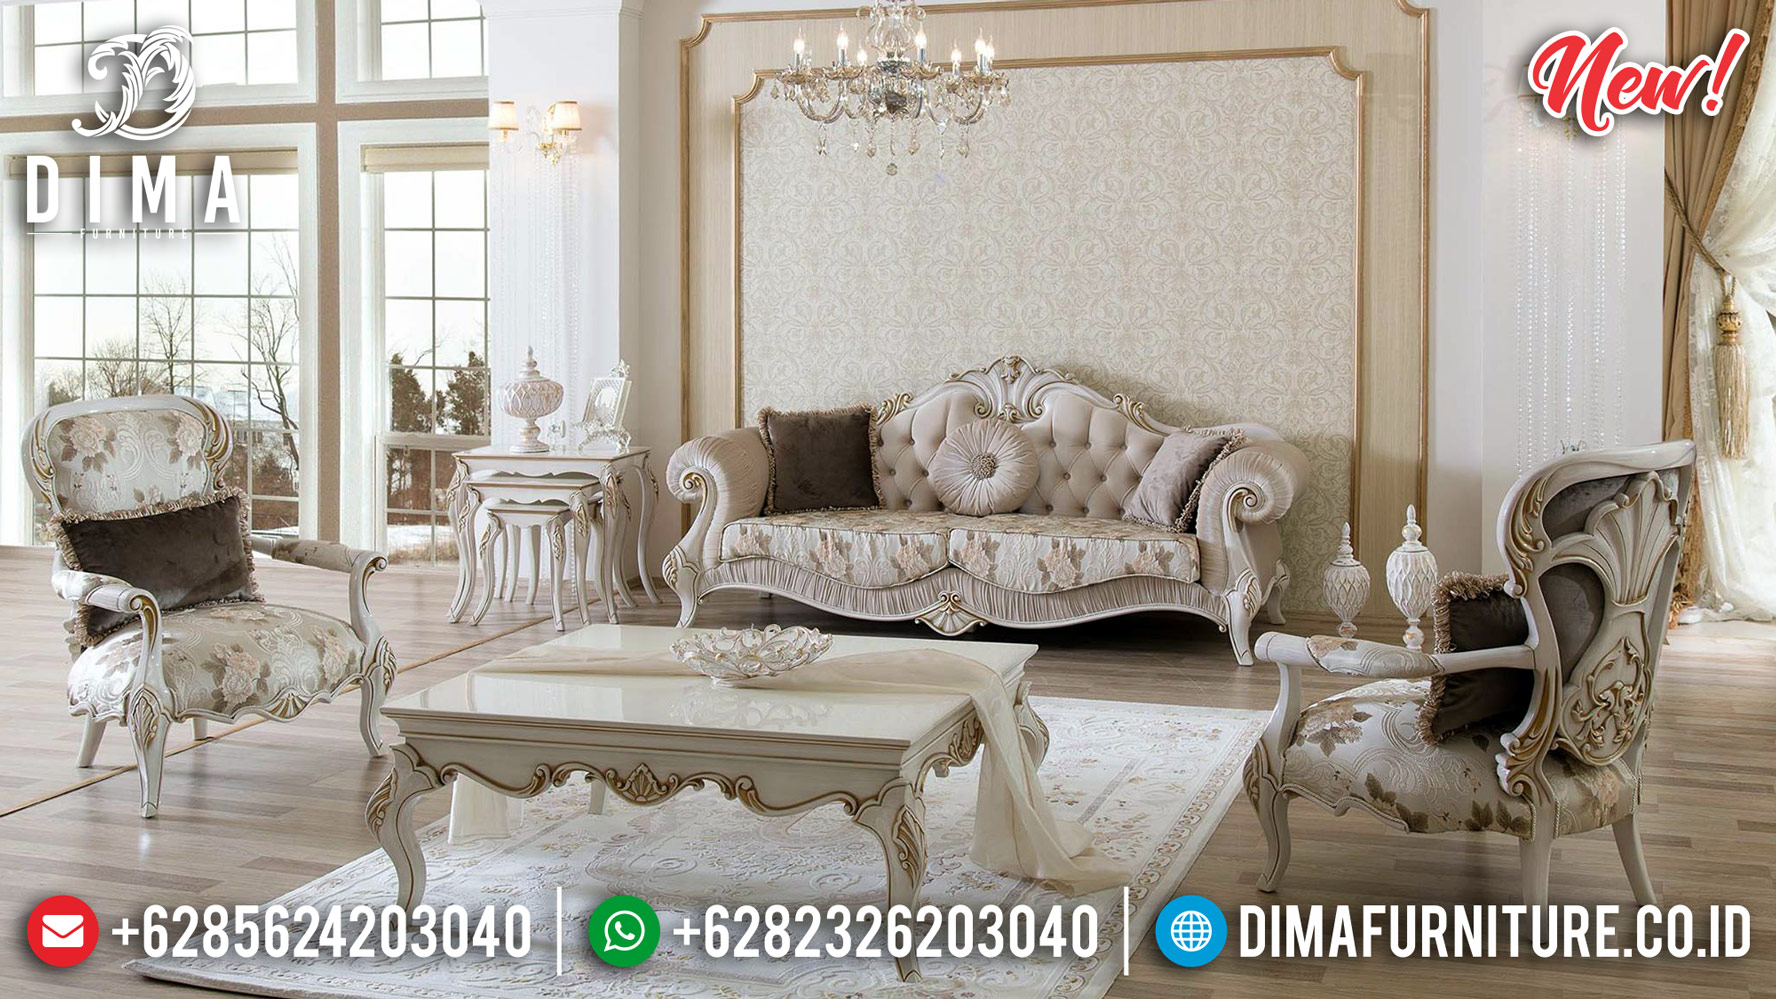 Free Ongkir Sofa Tamu Mewah Jepara Luxury Carving Jepara New Model Classic Furniture TTJ-0801